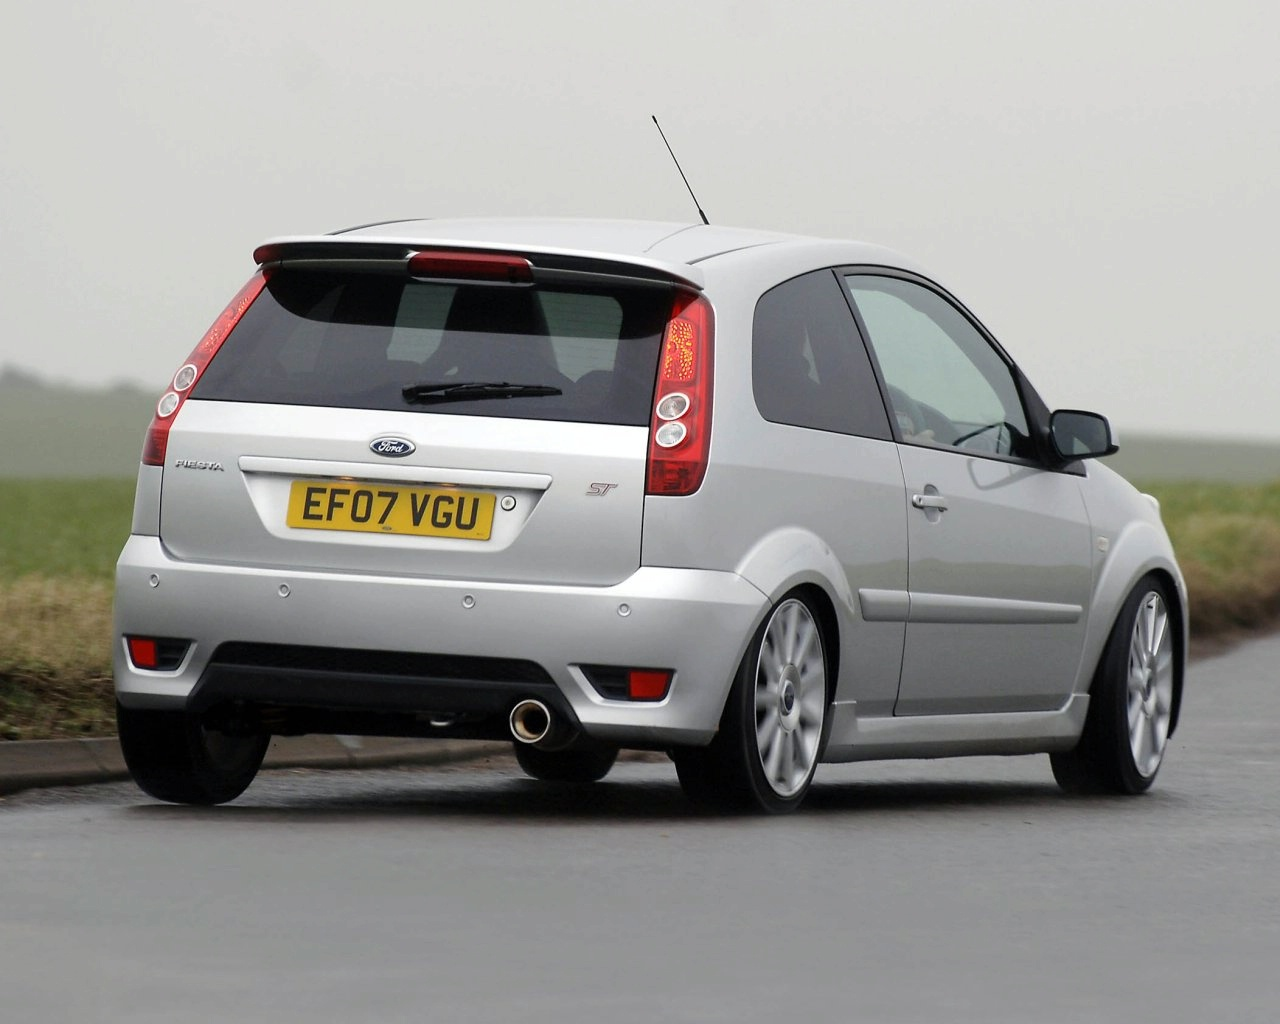 ford fiesta 2.0 st-pic. 3